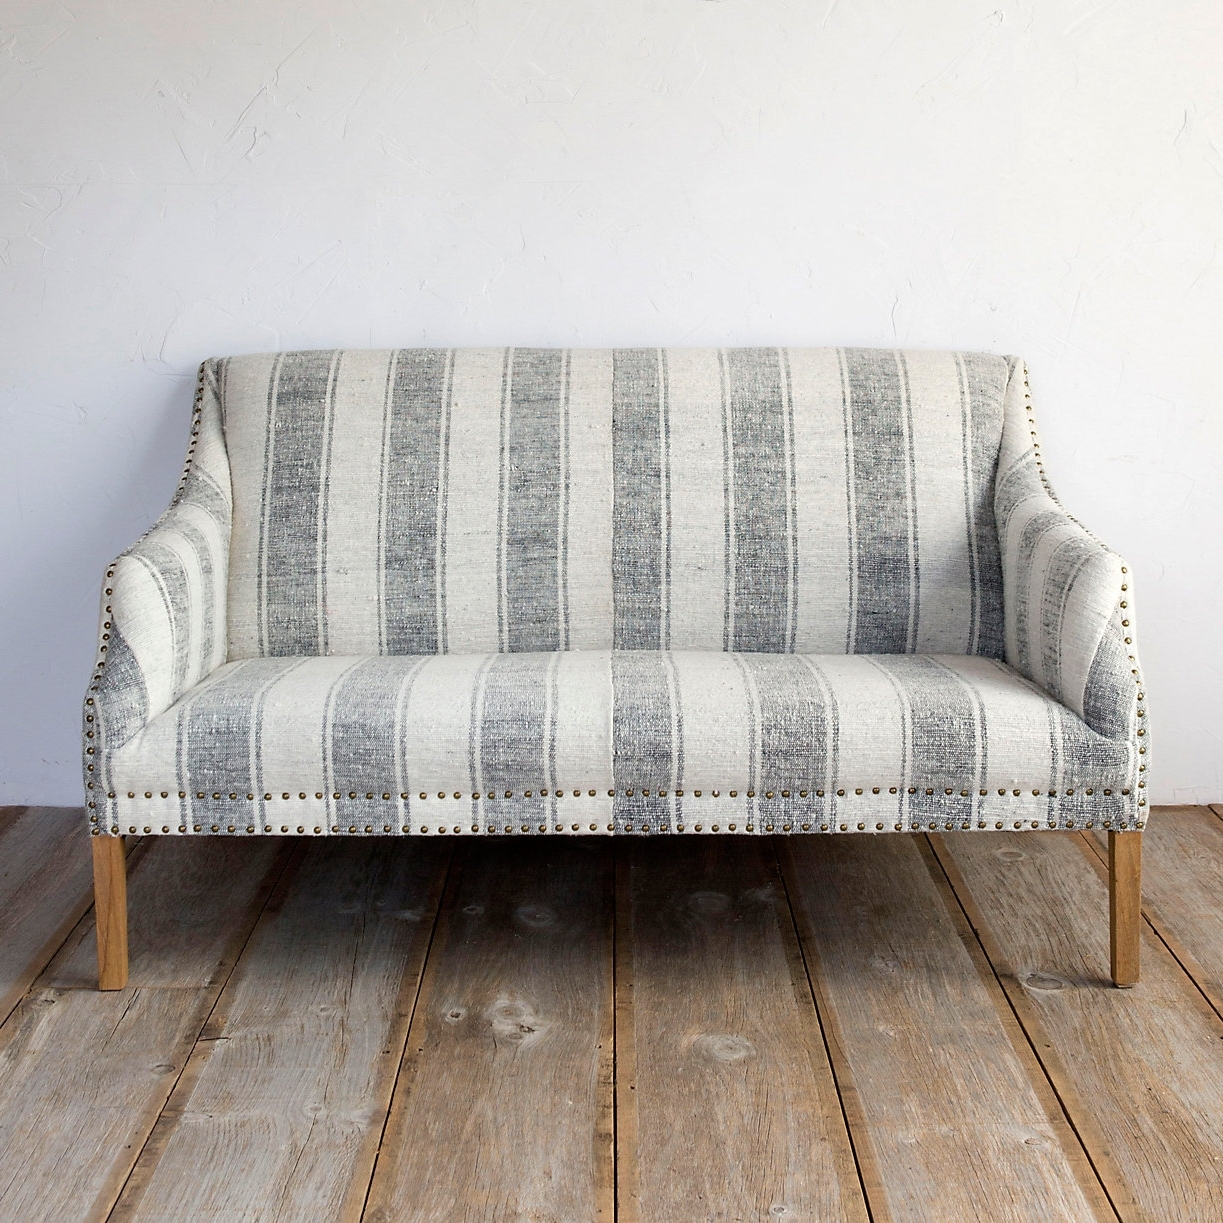 Shabby Chic Decor For Sale Shabby Chic Used Furniture Shabby Chic For Popular Shabby Chic Sofas (View 15 of 15)